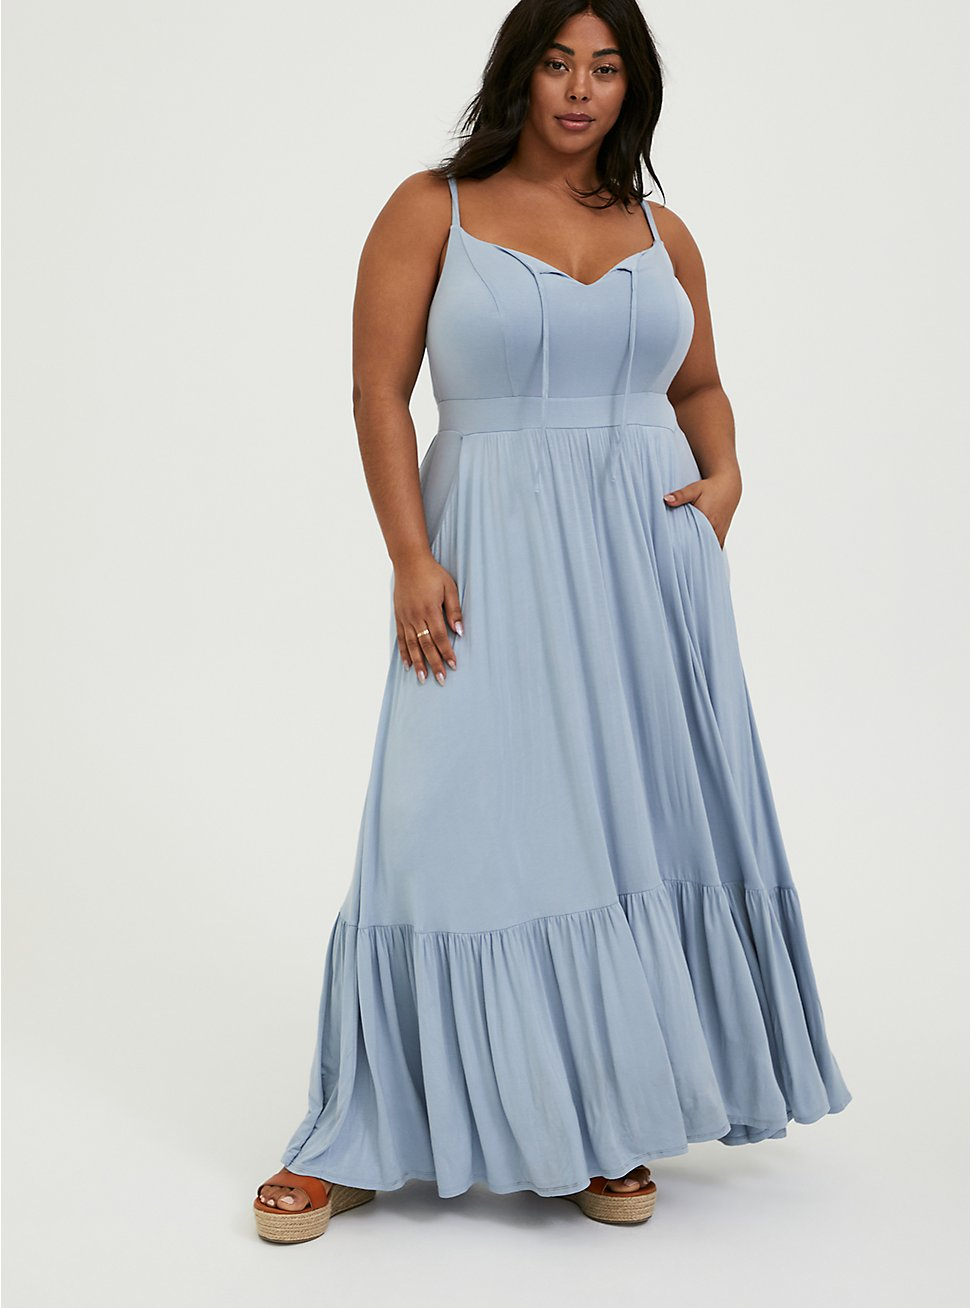 May Plus Size Style Horoscope- SUPER SOFT LIGHT BLUE SHIRRED HEM MAXI DRESS